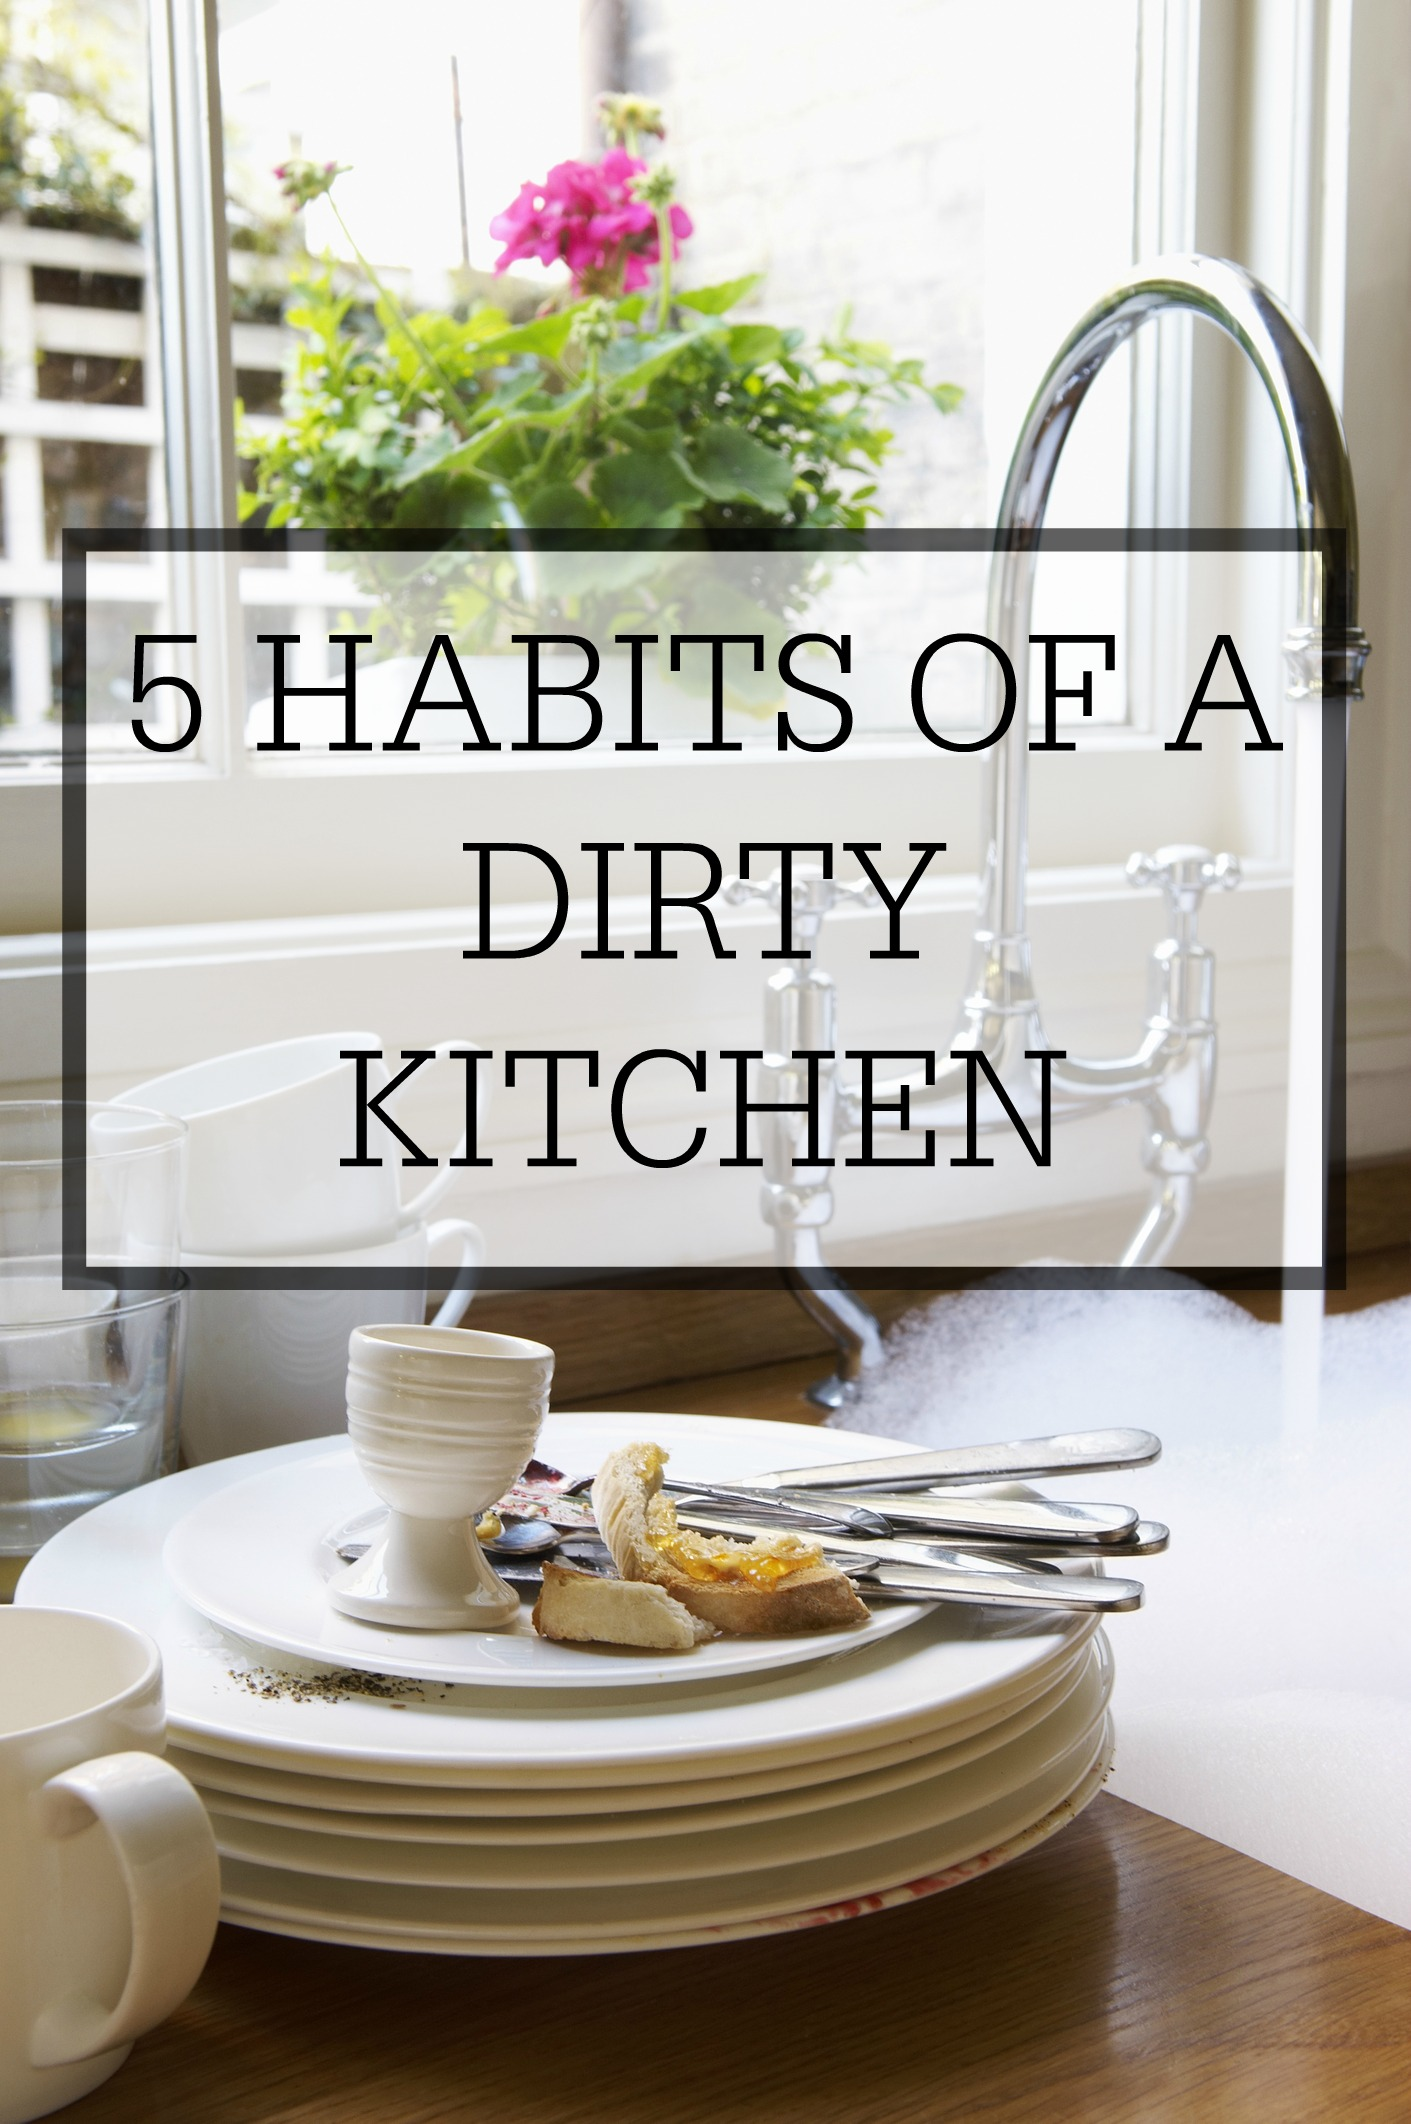 Five habits of a dirty kitchen – Simple Homemaking